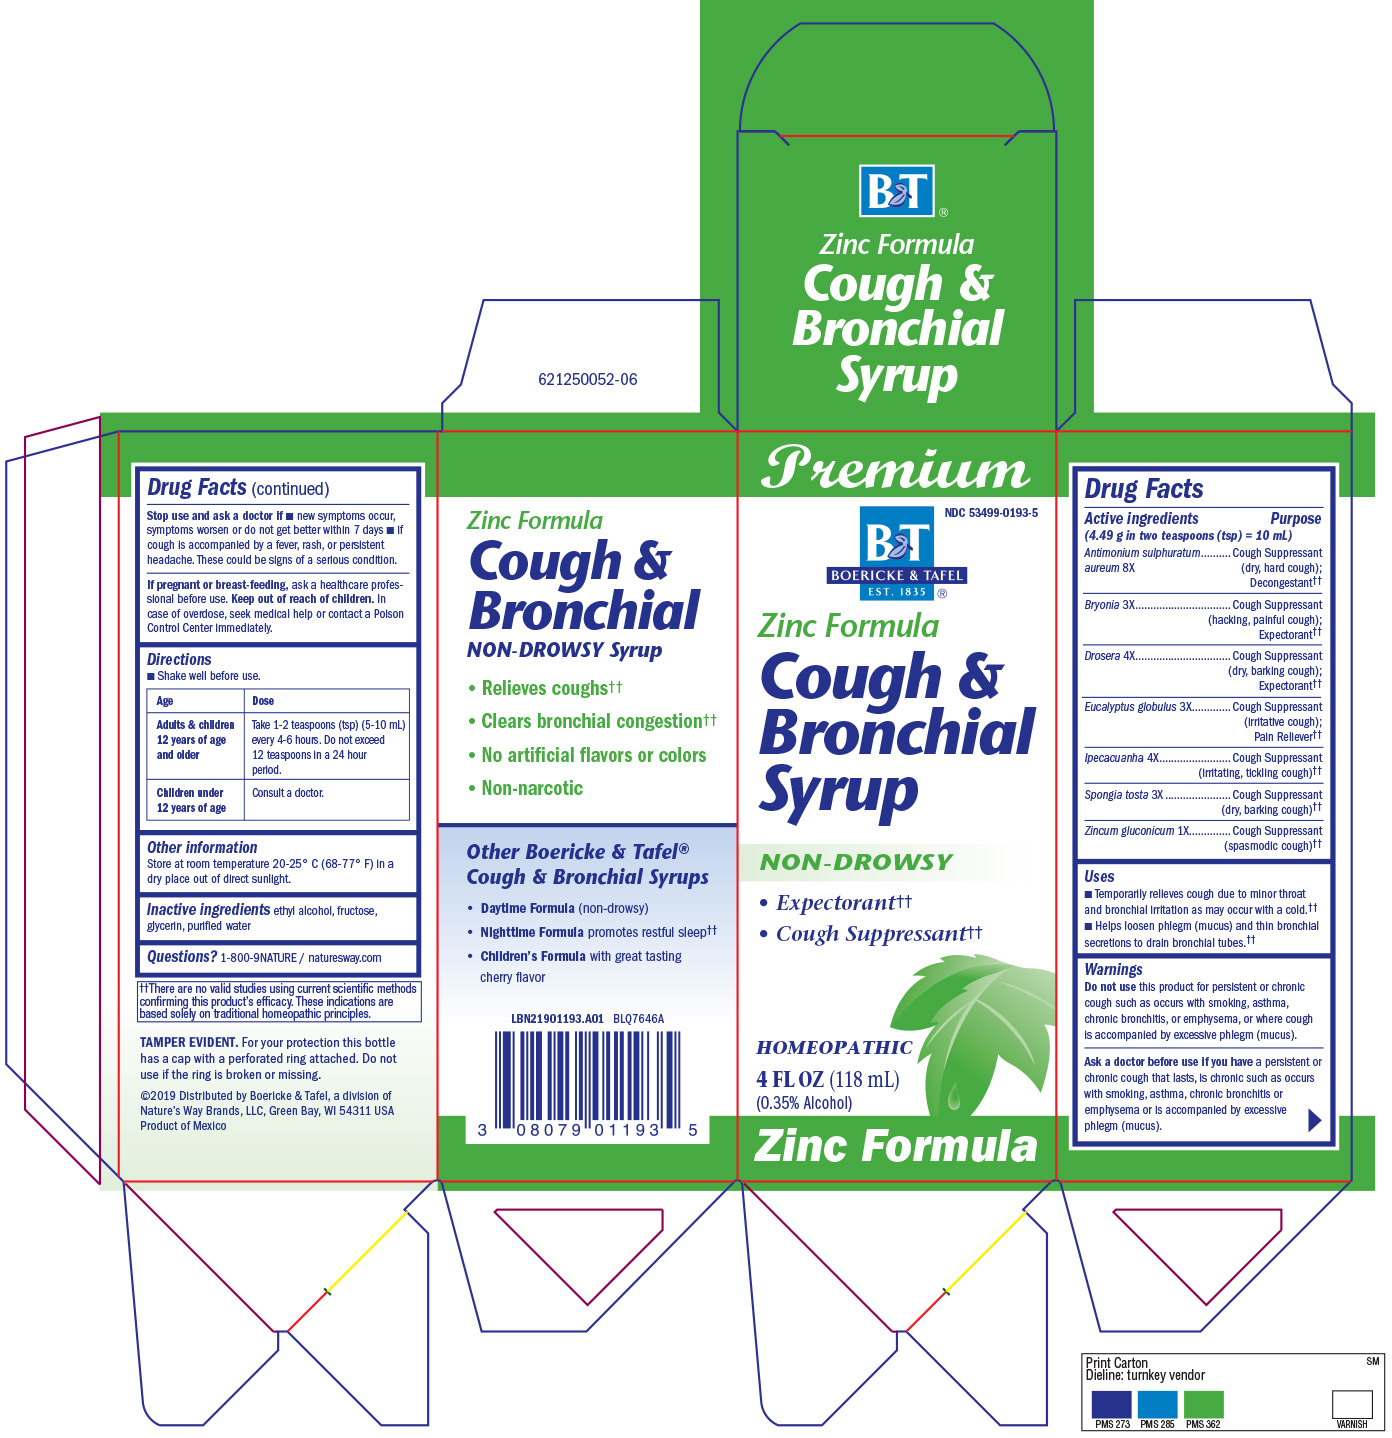 21901193_A01-BT Cough Bronchical with Zinc Syrup.jpg